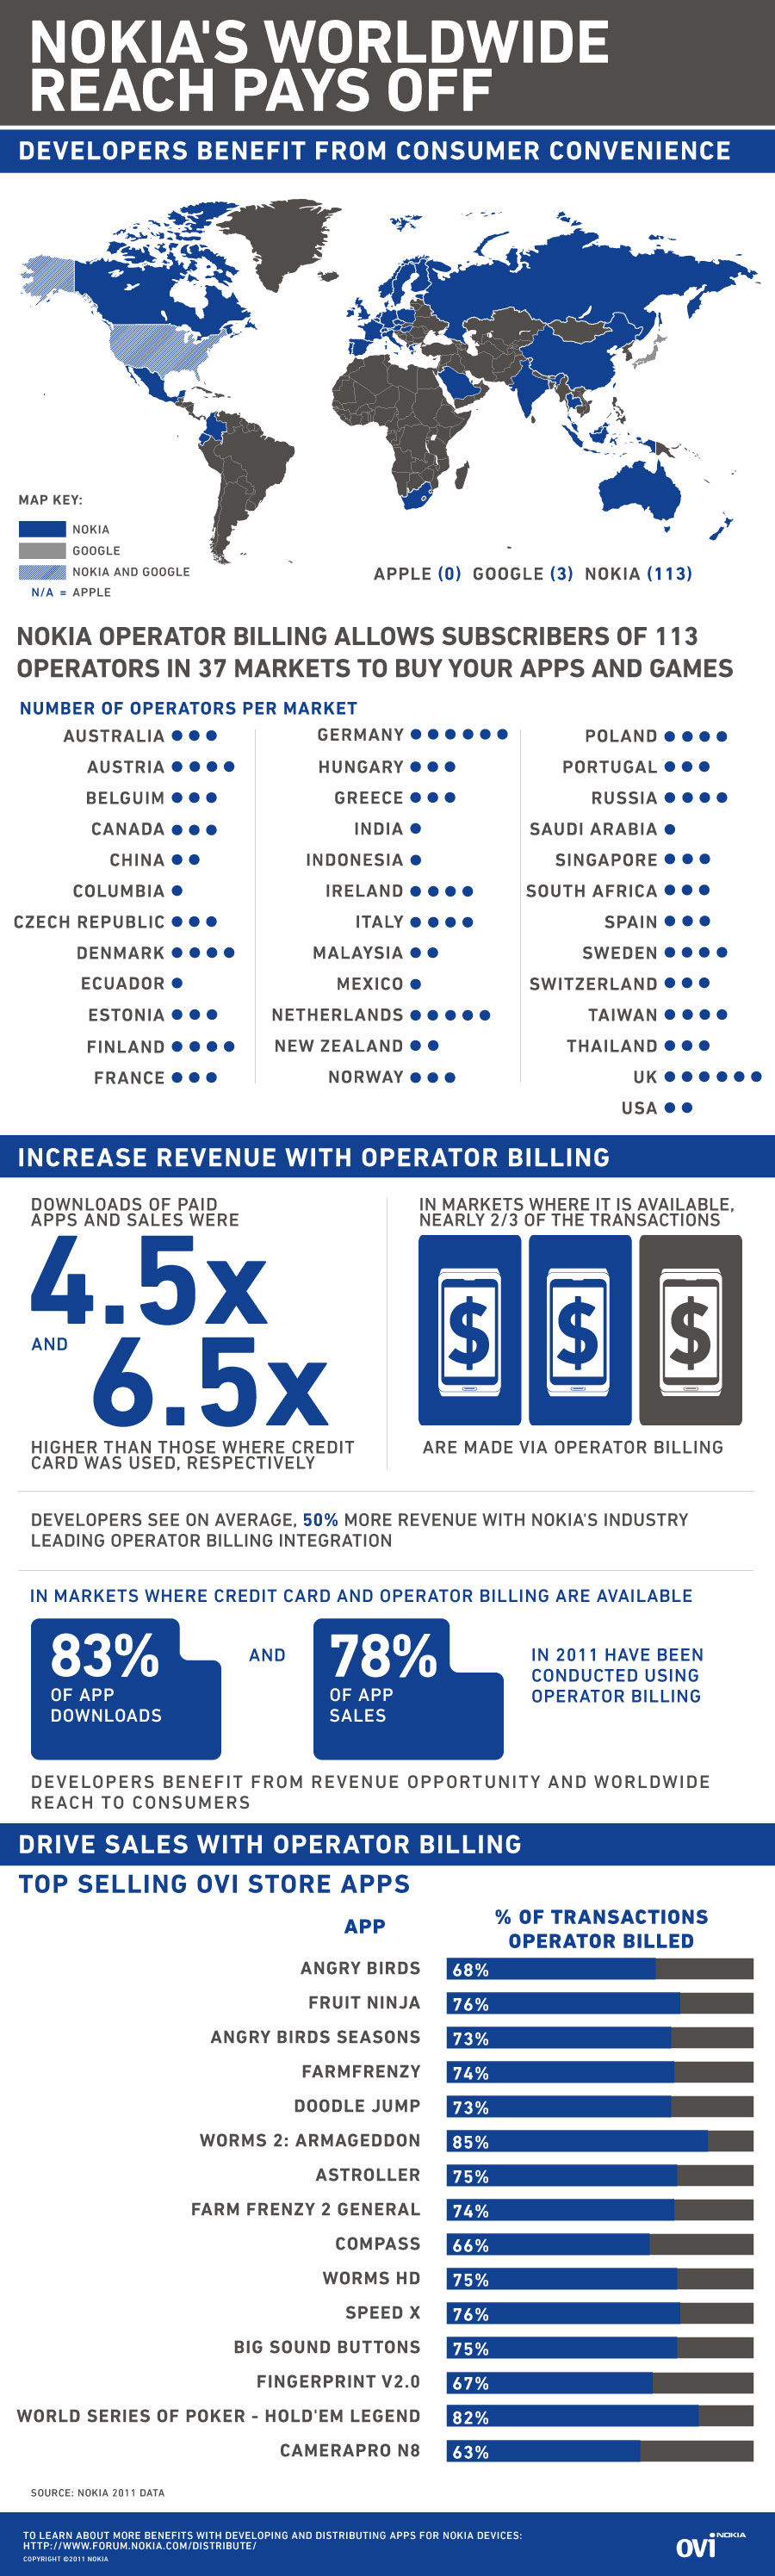 Infographic: Nokia's Worldwide Reach Pays Off